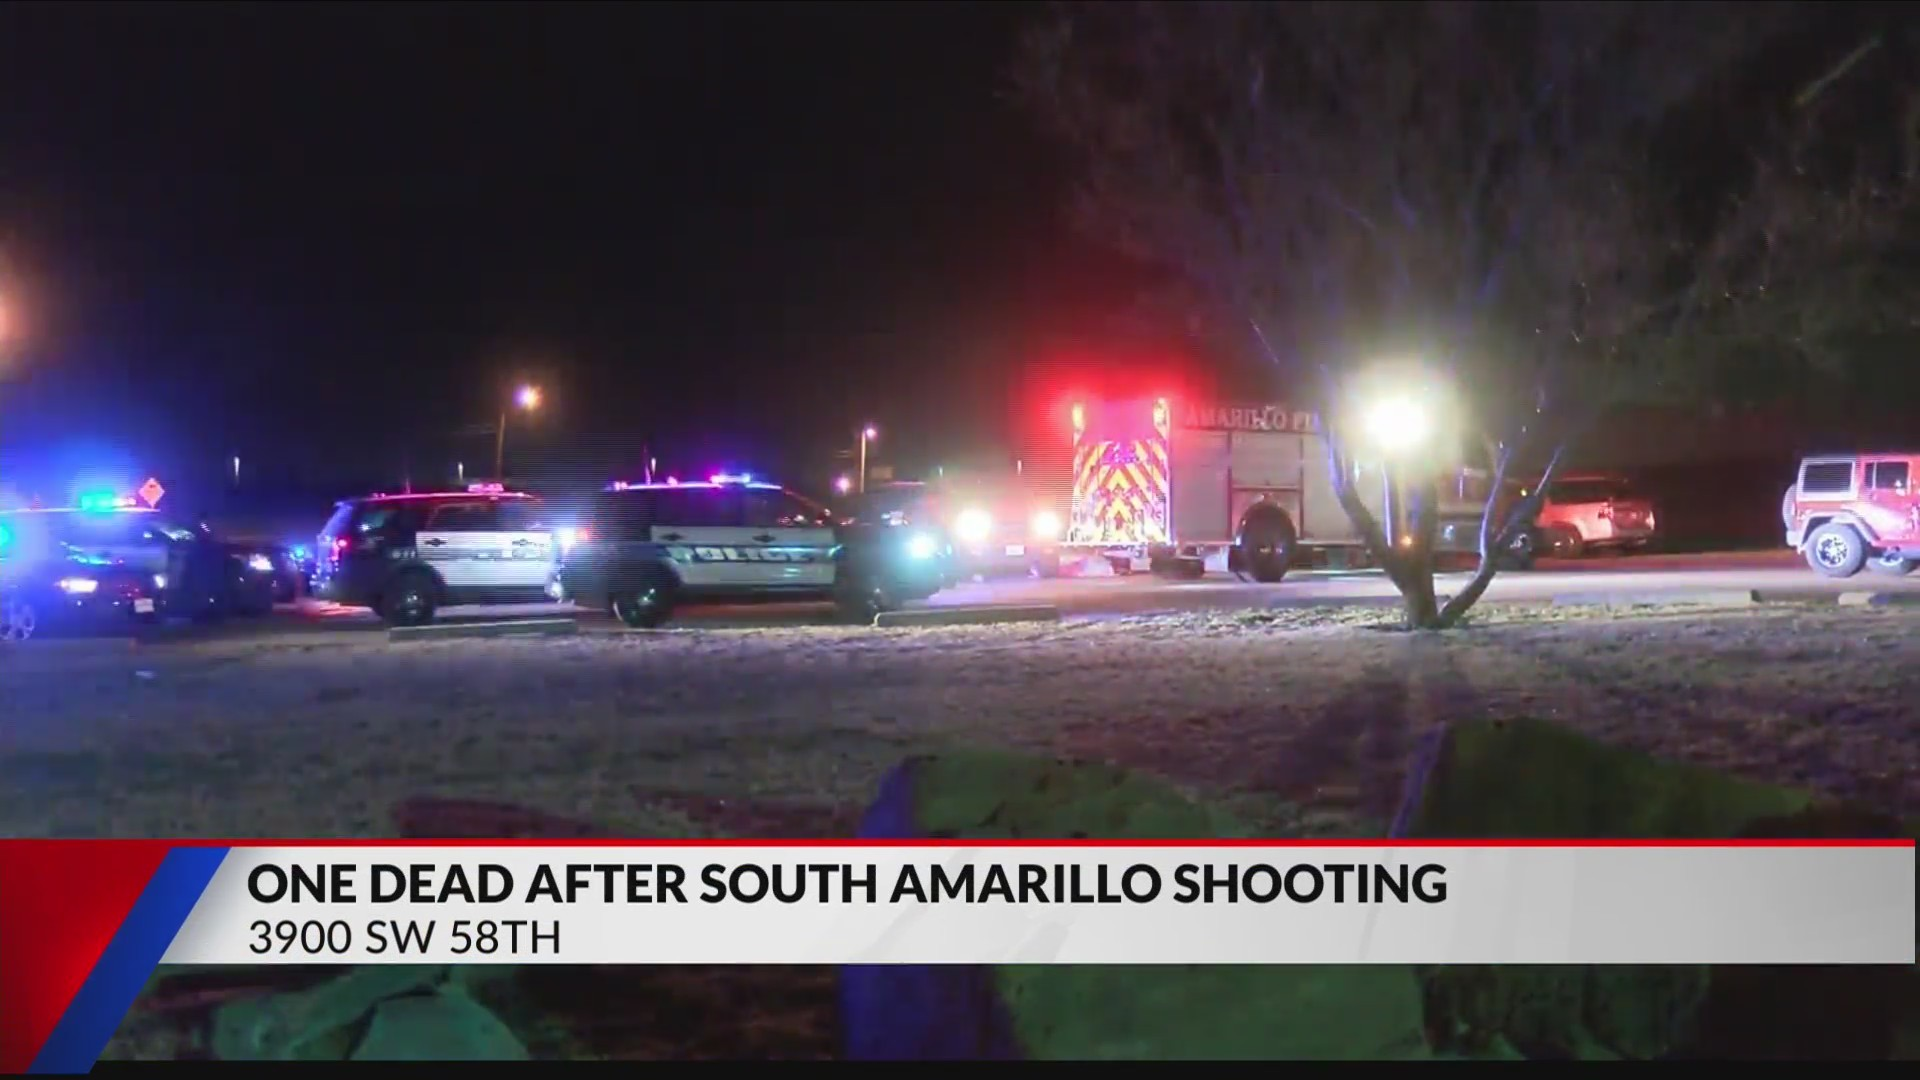 Special Crimes Release Name in Fatal Wednesday Night Shooting